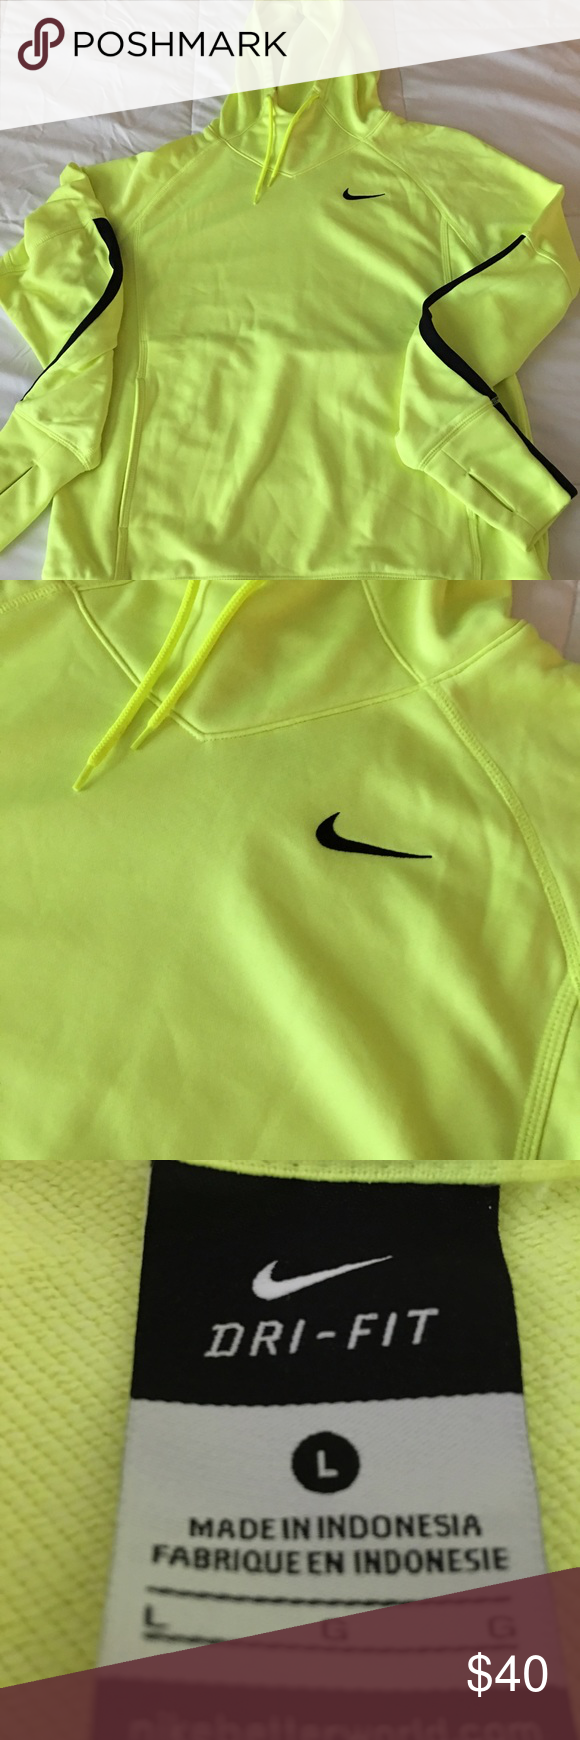 NWOT Nike Dri-Fit hoodie L Neon yellow Nike pullover. Perfect condition. Bought it from another posher but it doesn't fit me. No stains, has thumb holes. Nike Tops Sweatshirts & Hoodies